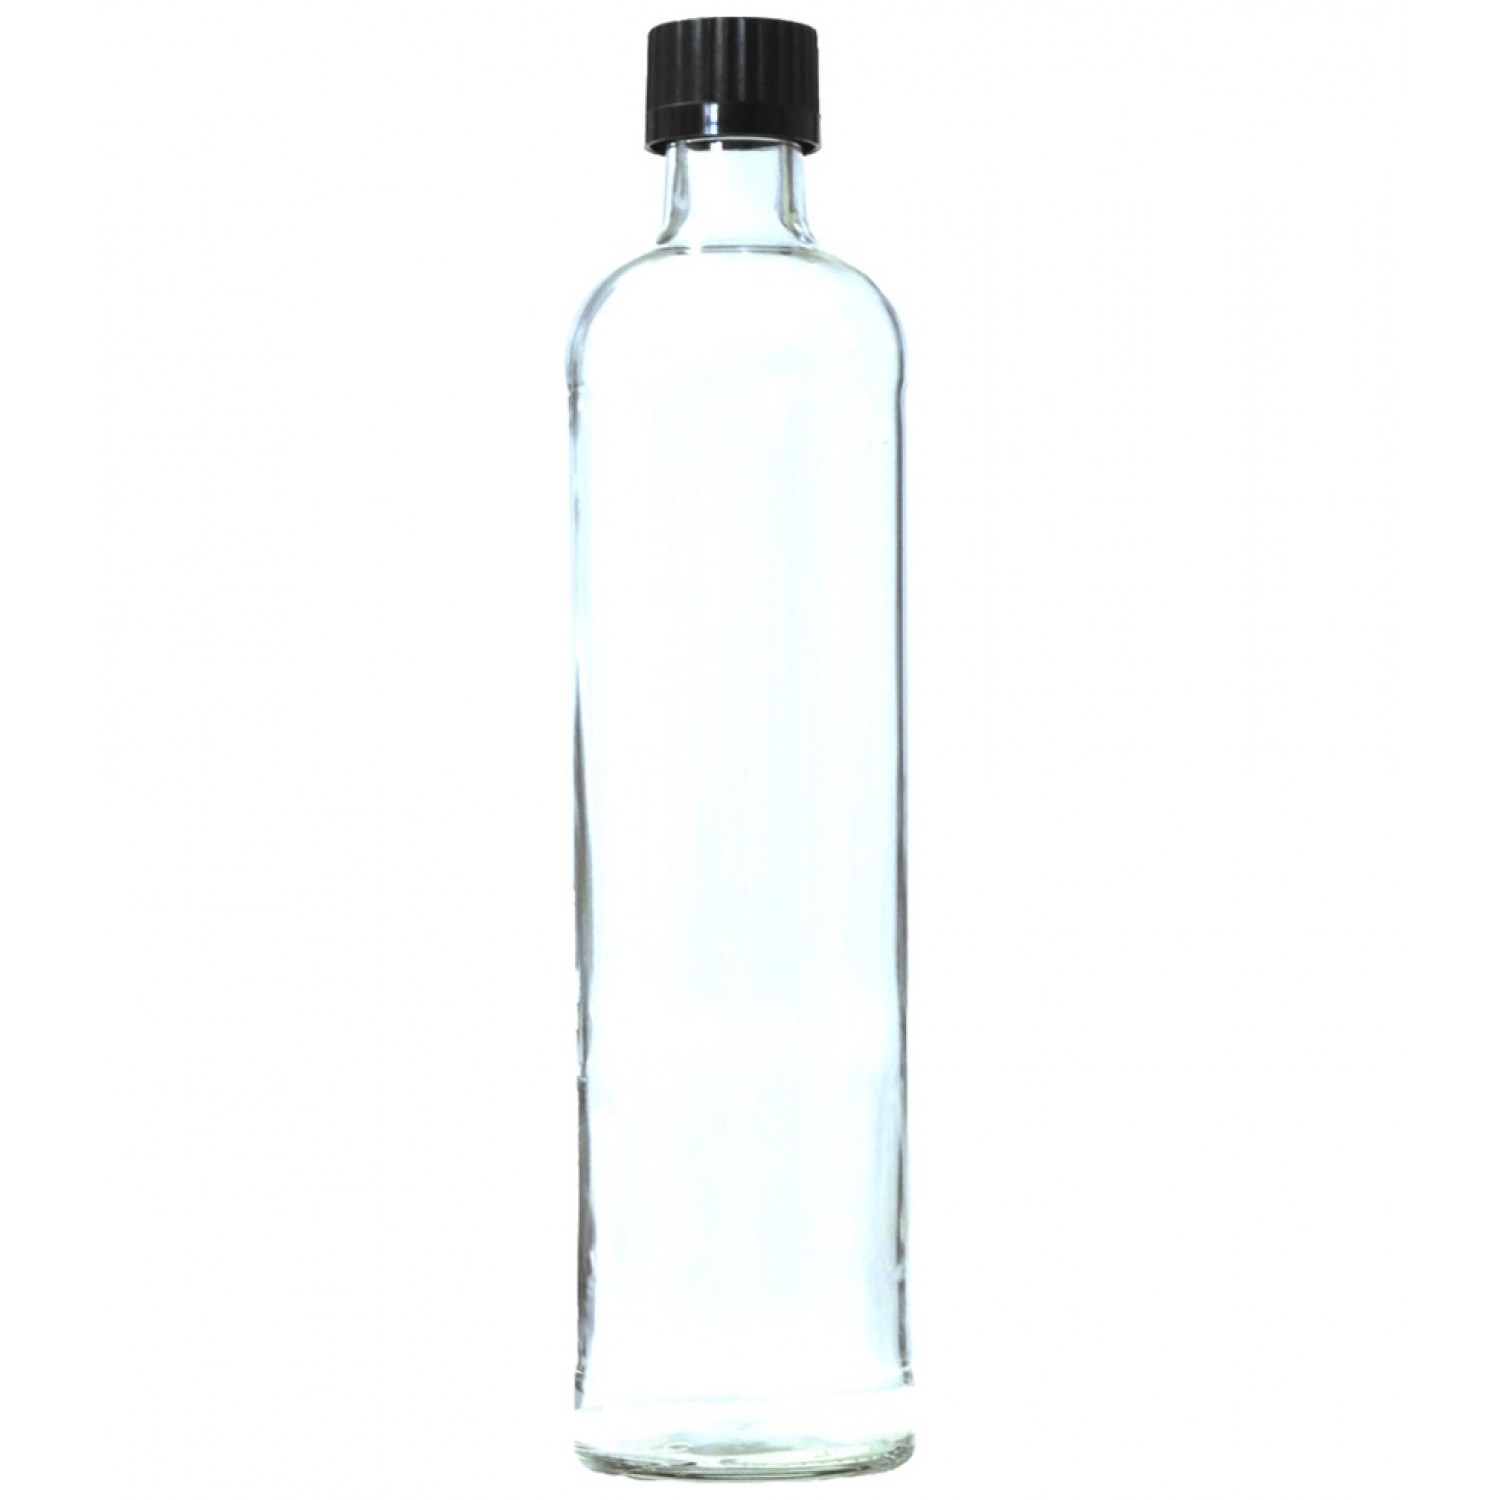 Replacement Glass Bottle - Drinking bottle by Dora